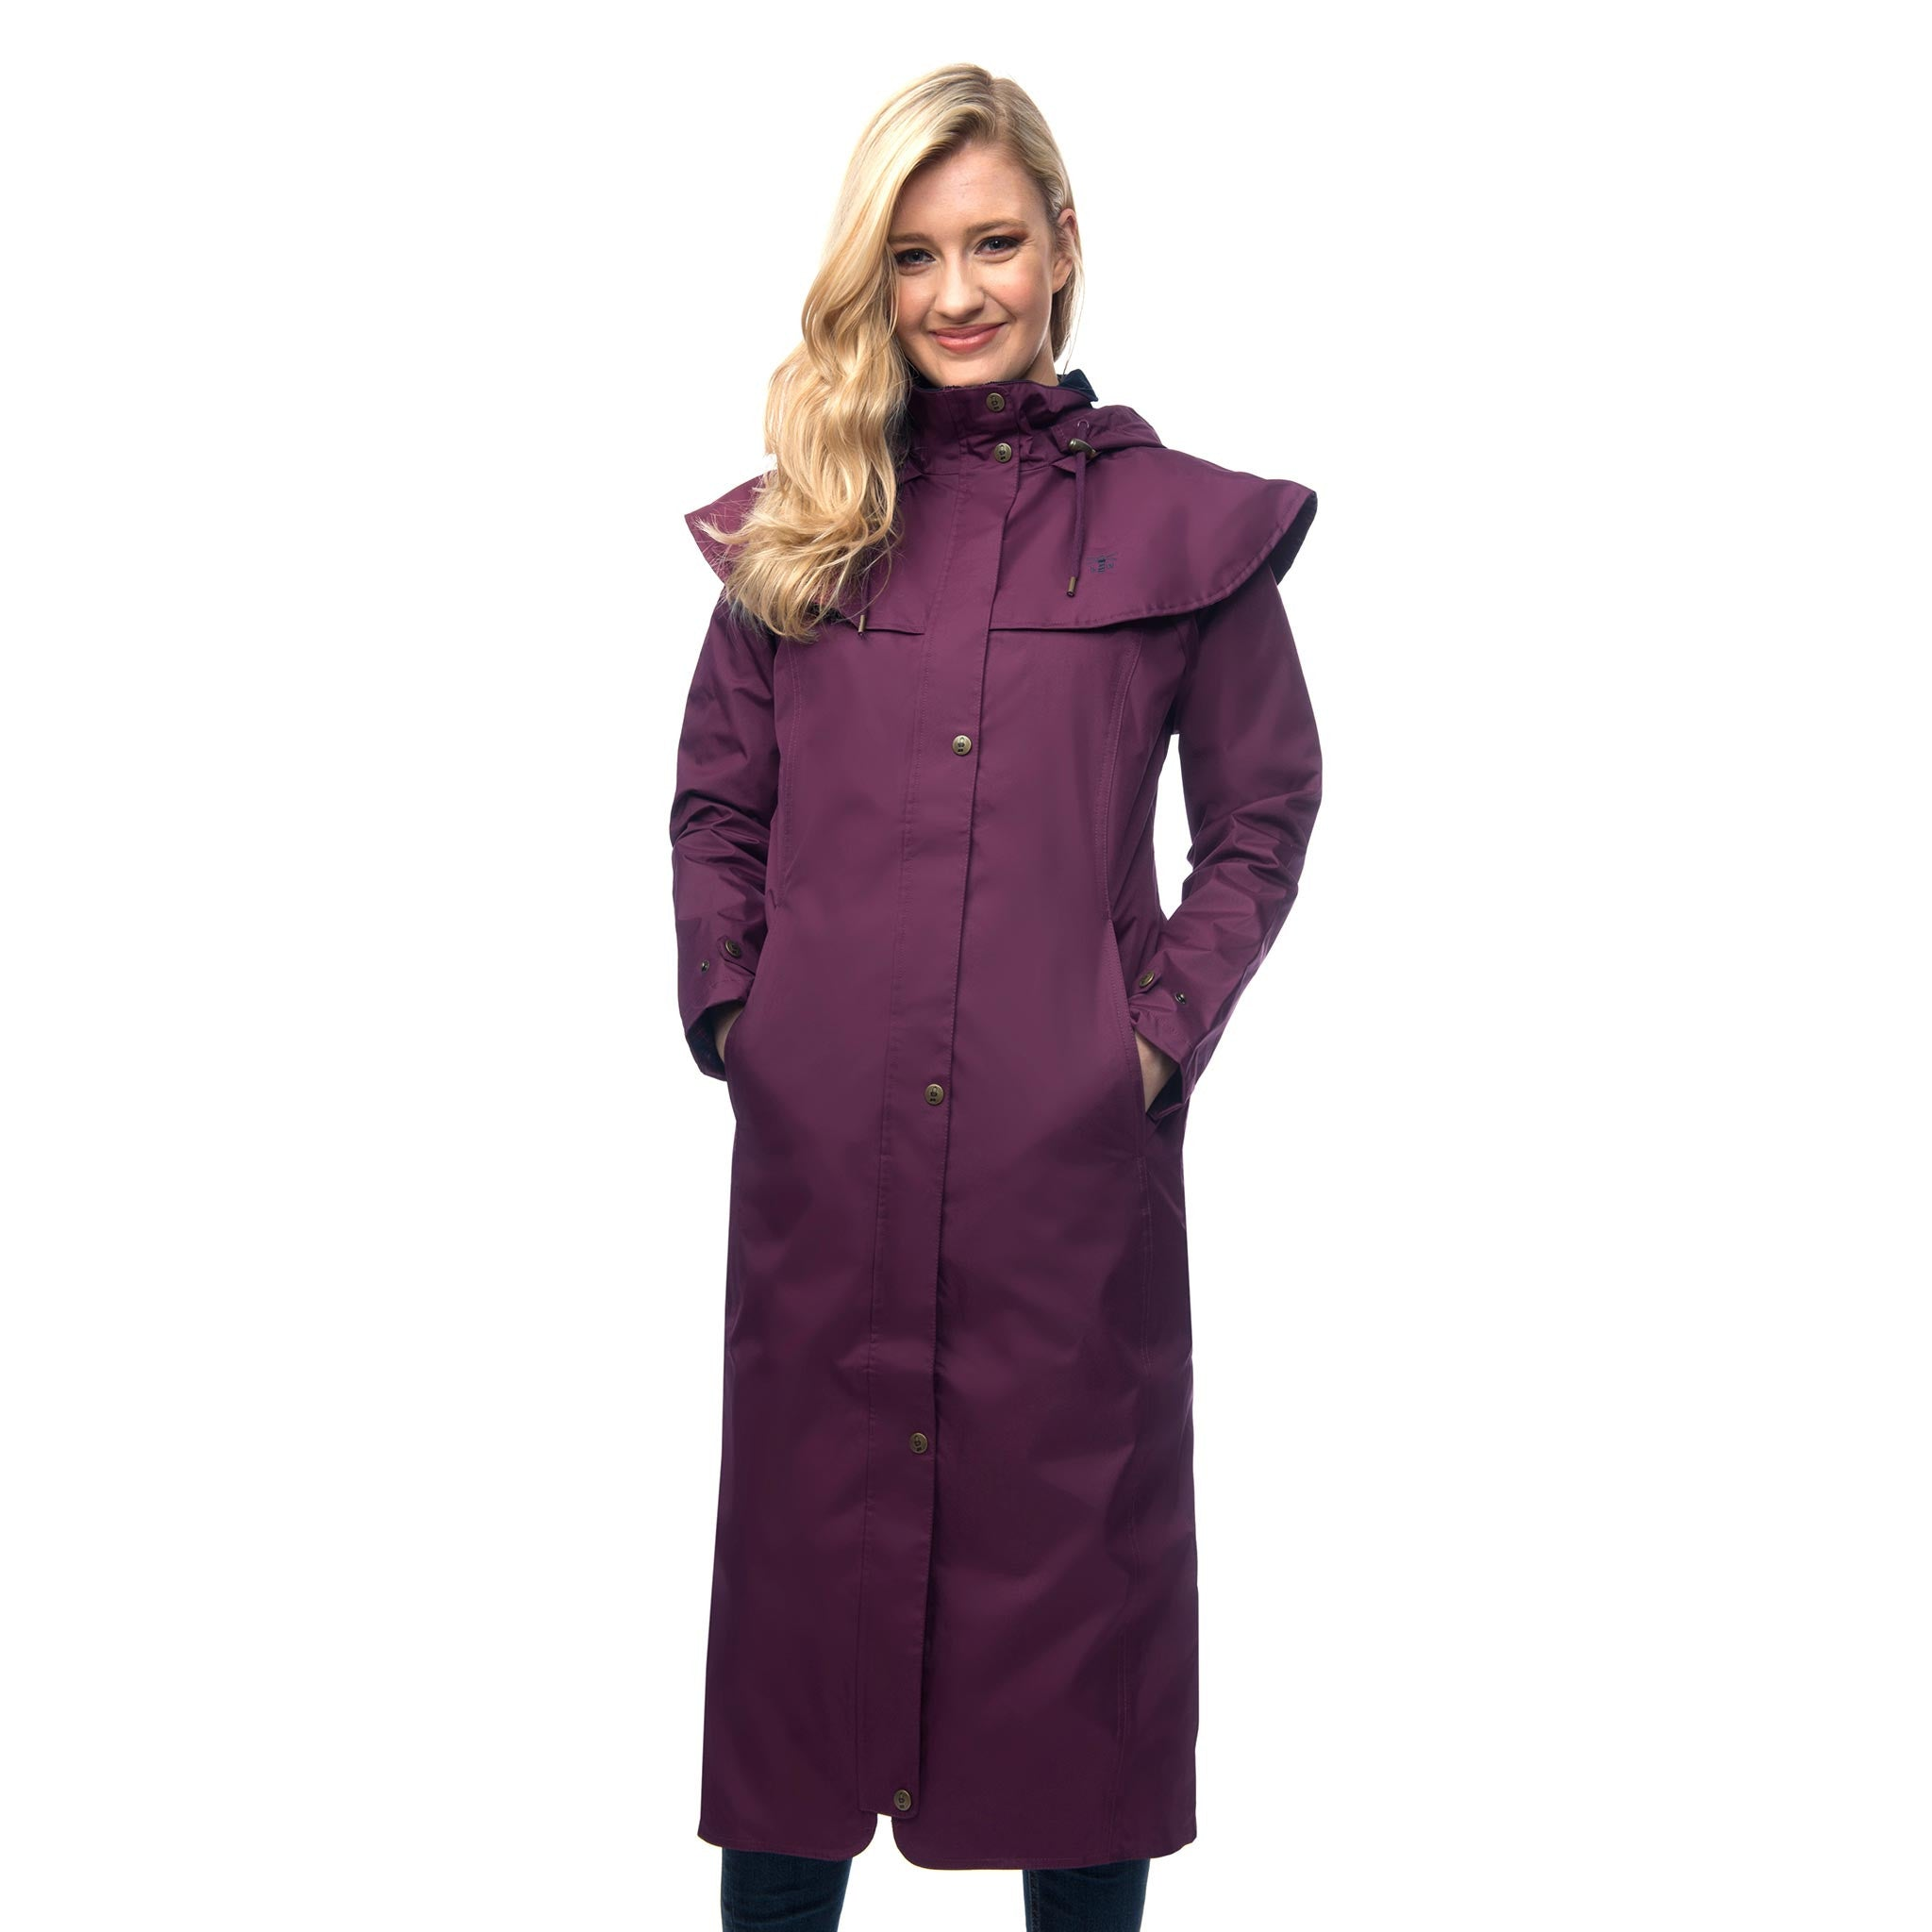 Lighthouse Womens Outback Full Length Waterproof Raincoat in Purple. Zipped and buttoned. Hands in pockets.